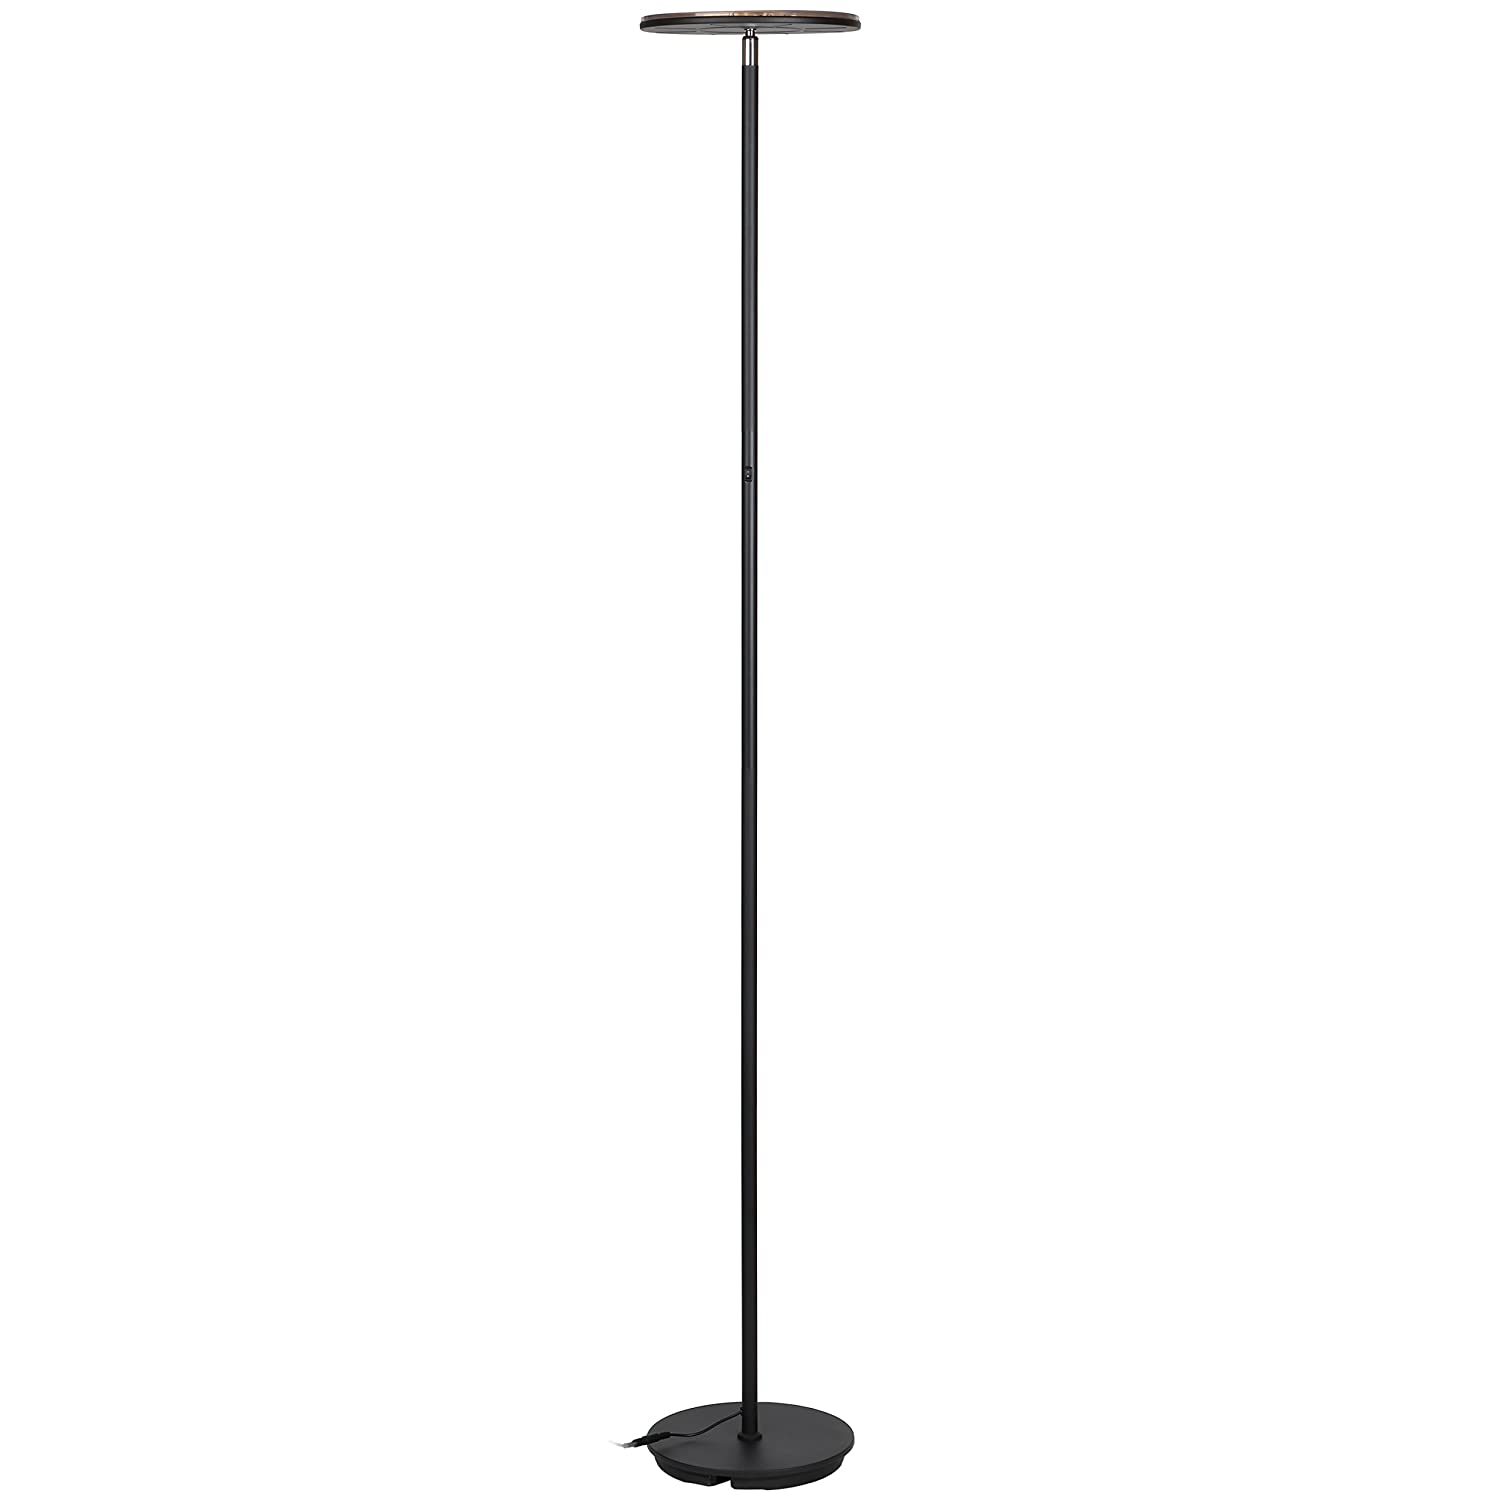 Brightech Kuler Sky - Color Changing Torchiere LED Floor Lamp - Dimmable, iOs & Android App Enabled Light - Remote Control Lamp for Living Rooms, Game Rooms & Bedrooms - Adjustable Pivoting Head - Bla SKYRGBBK